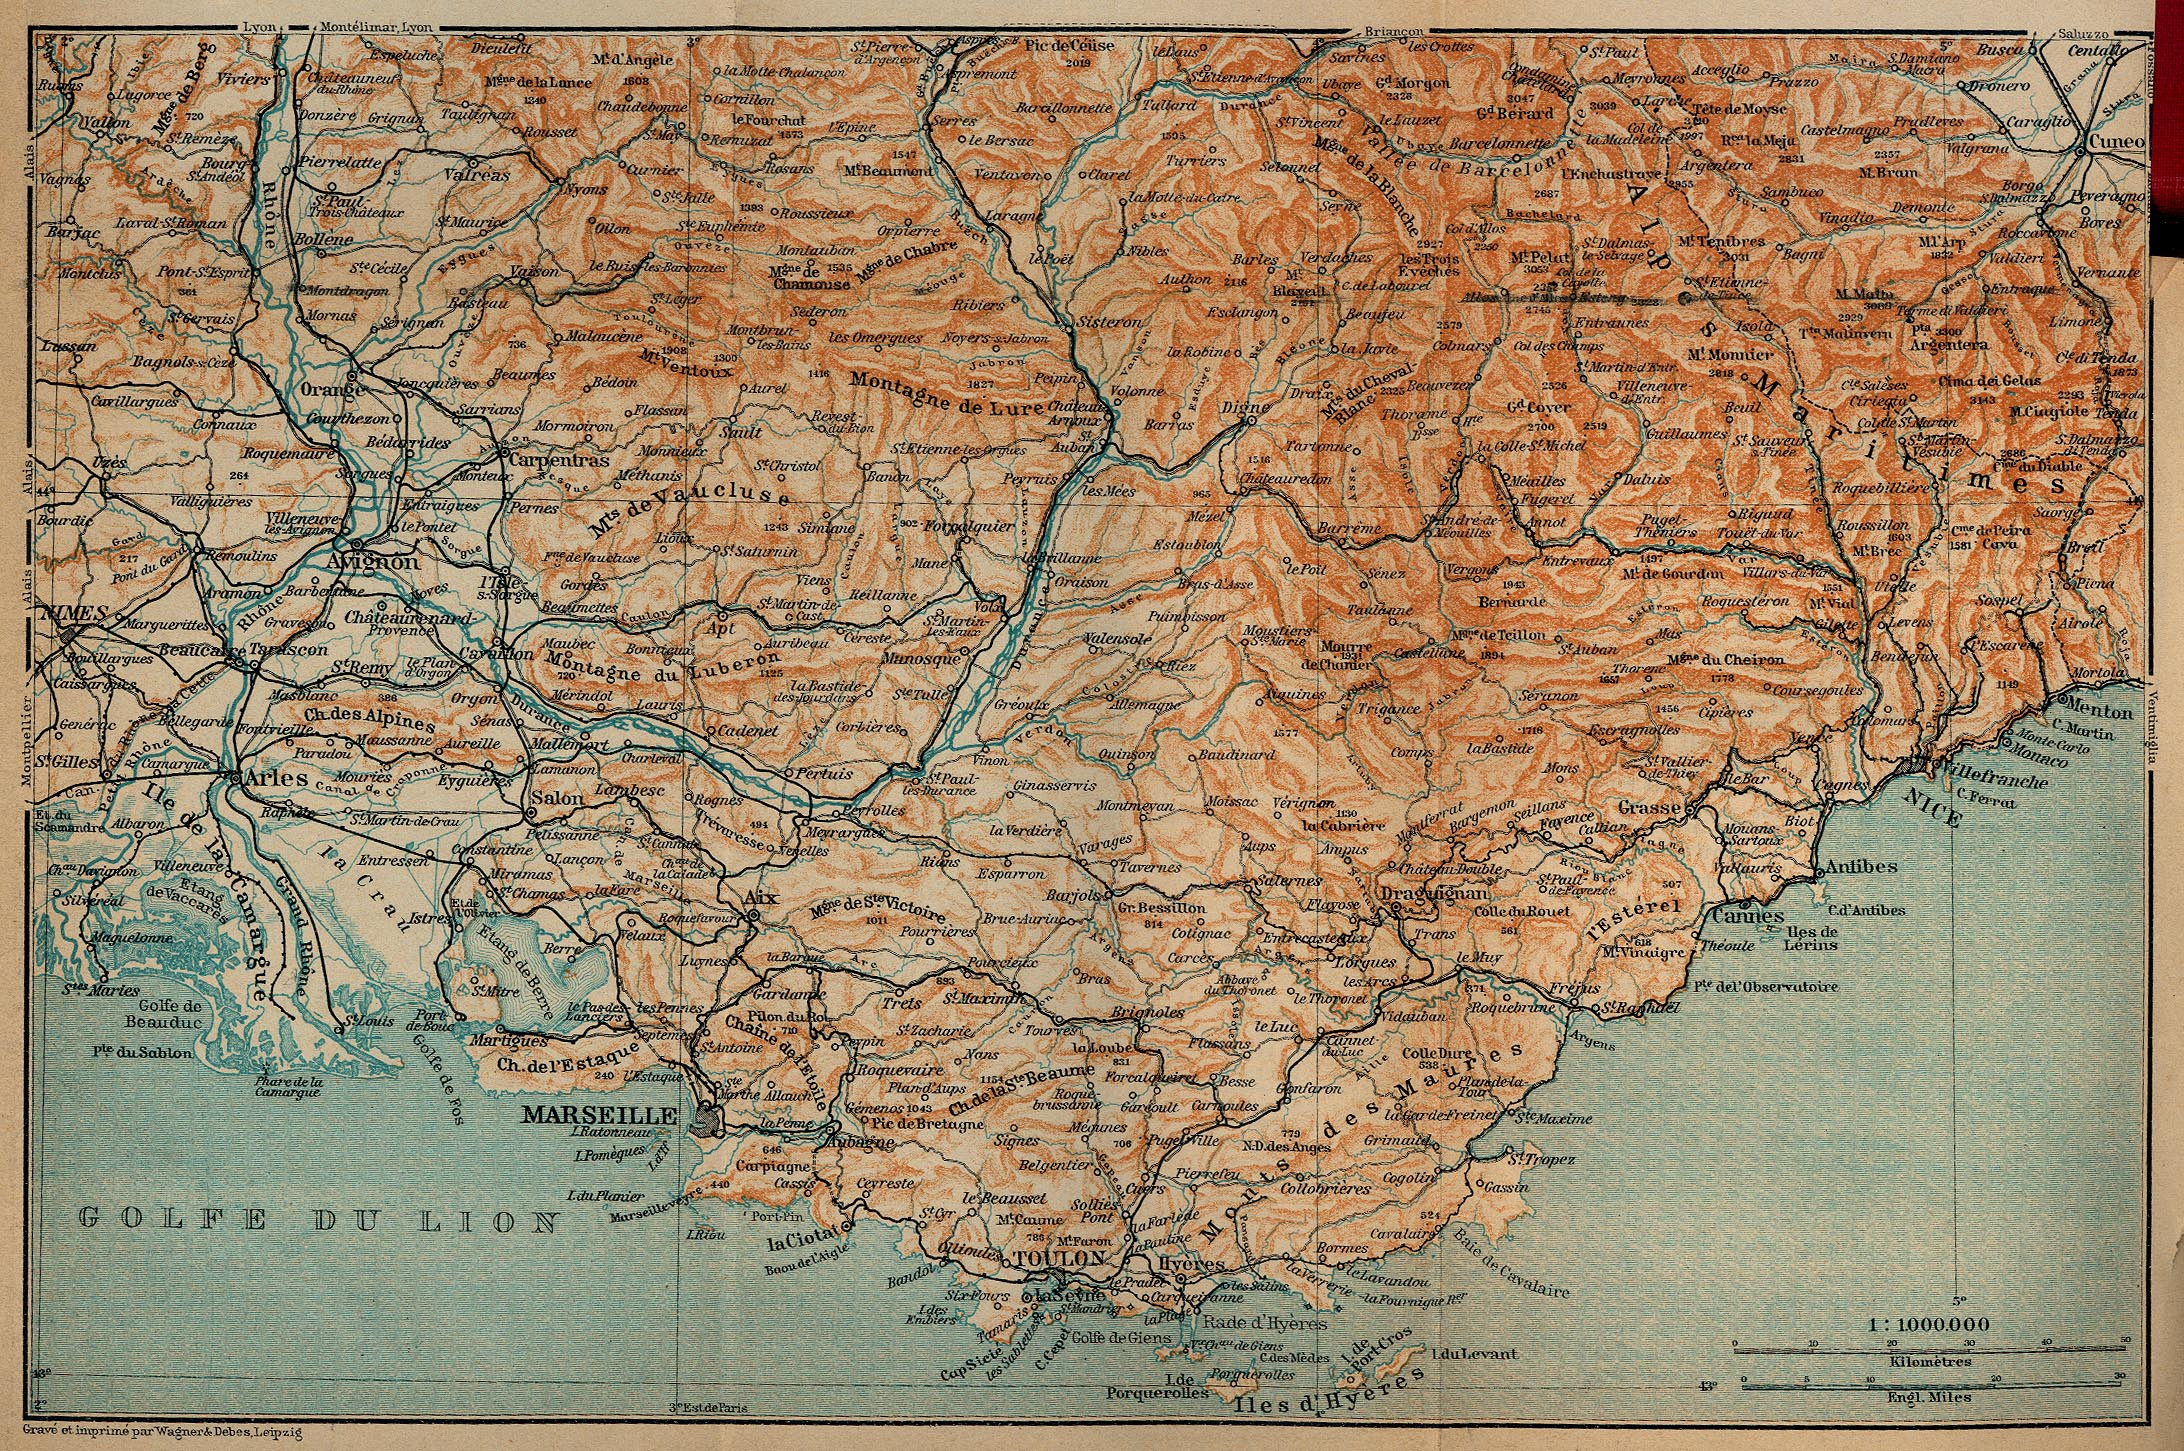 Provence Map Of France.French Corner Discover Provence May 2016 Consulat General De